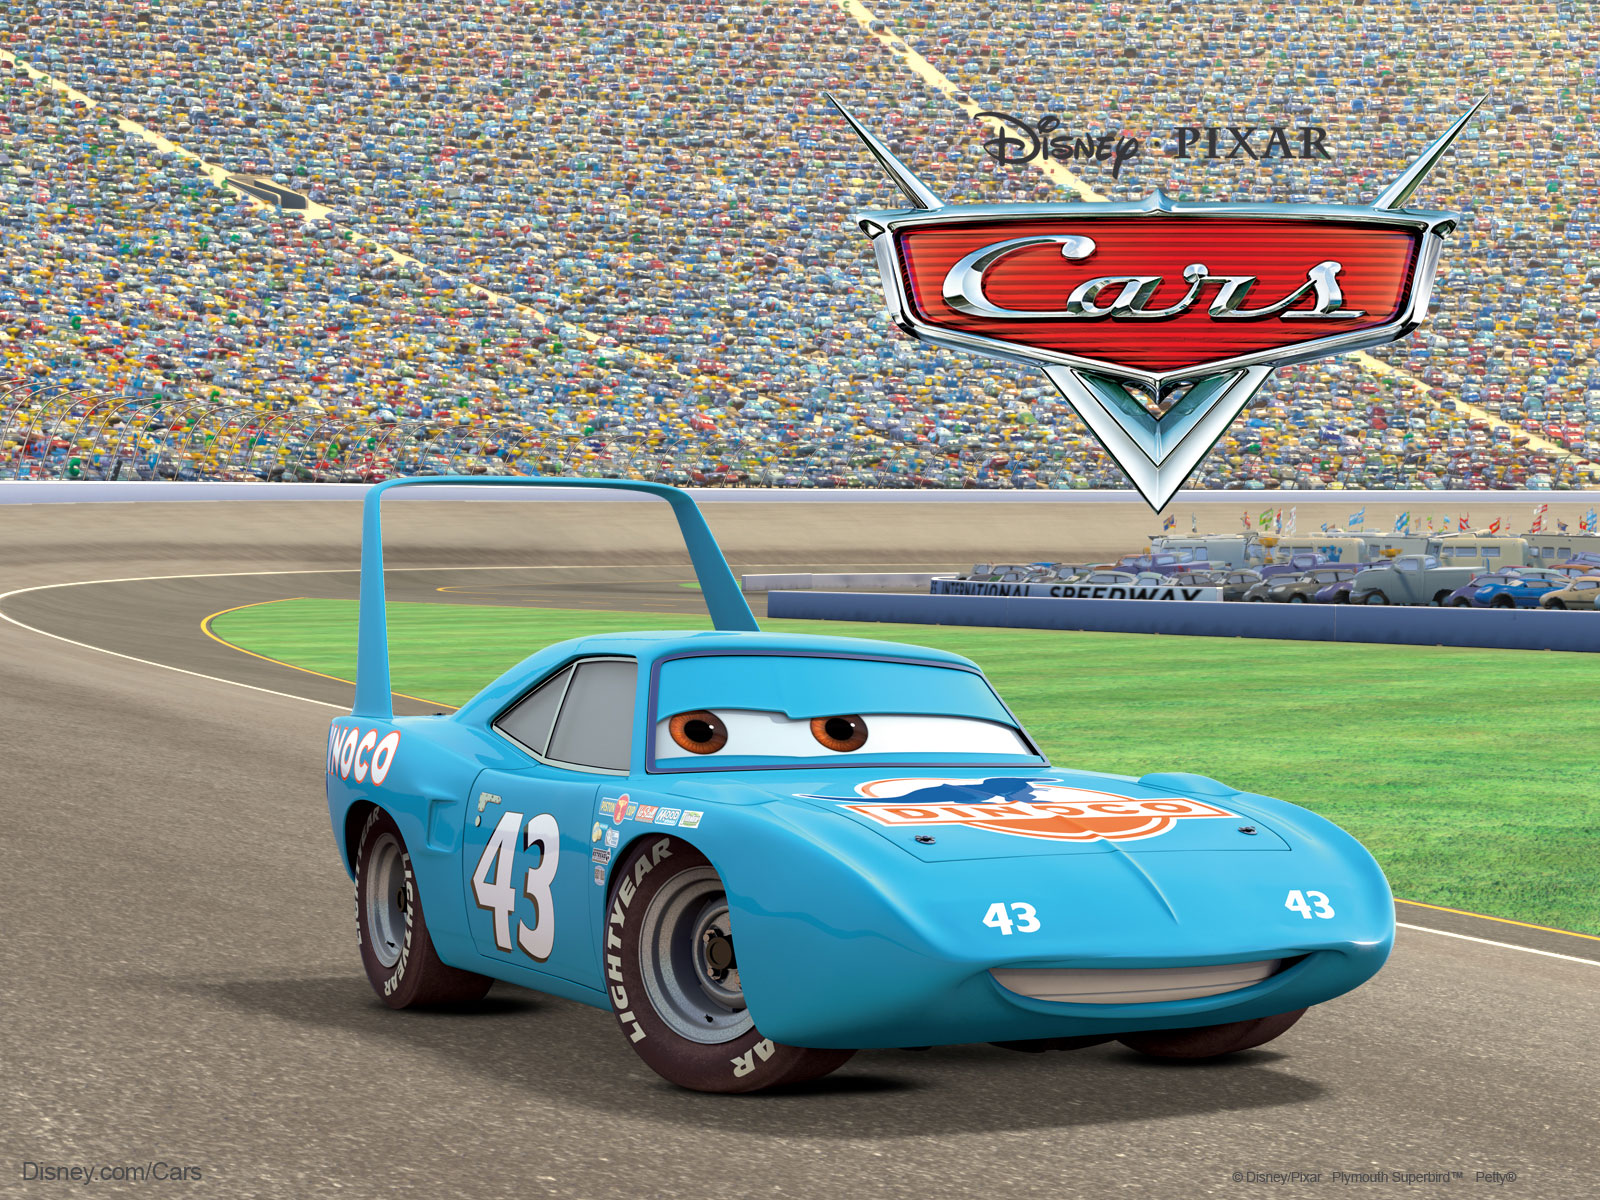 Image king pixar cars disney wiki - Disney cars wallpaper ...